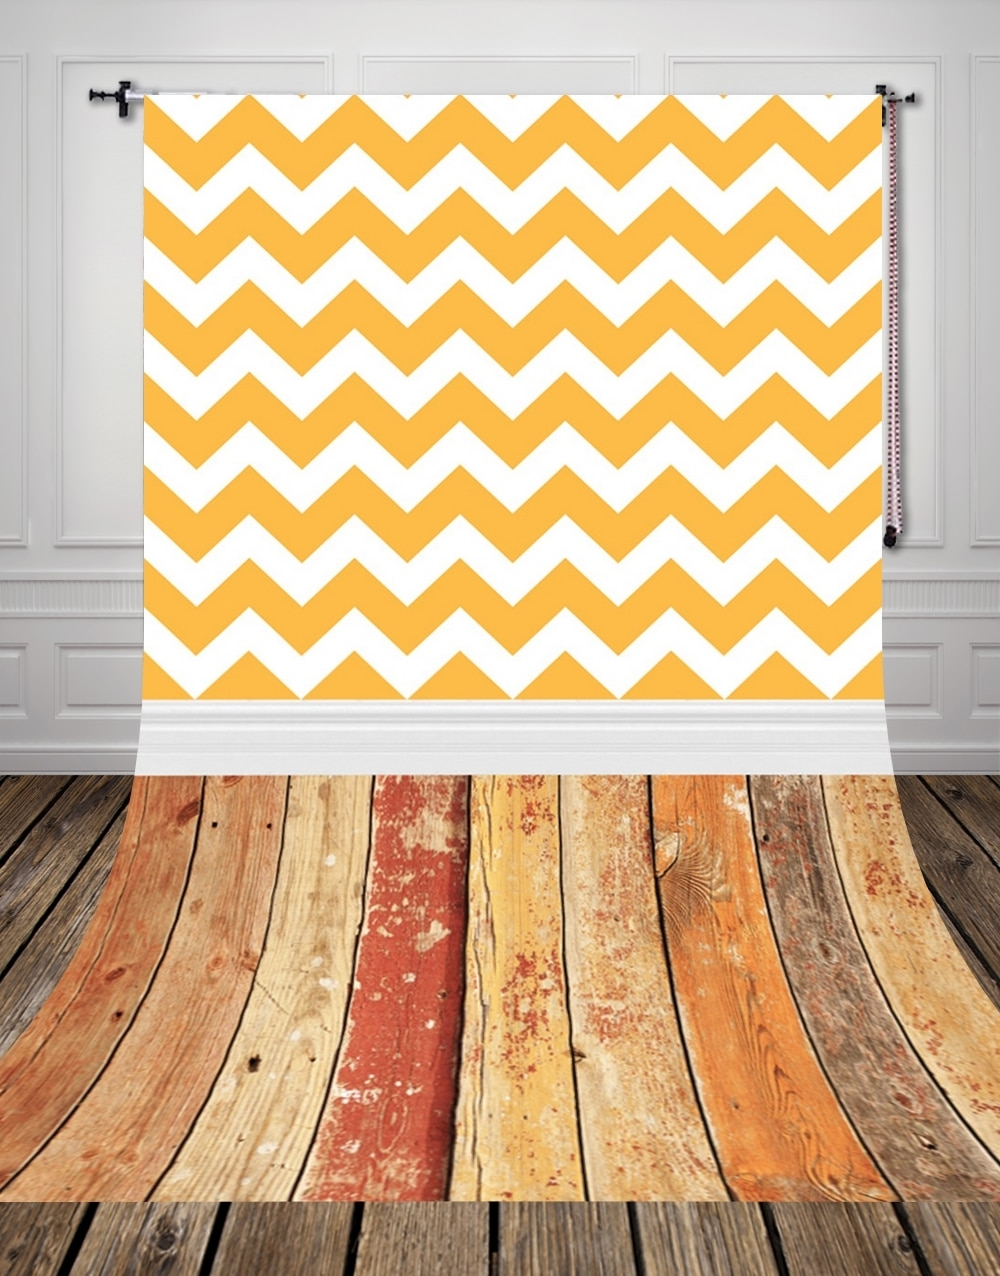 Popular Chevron Wall Art With Huayi Vintage Wood Floor Backdrop Vintage Yellow Chevron Wall Art (View 10 of 15)